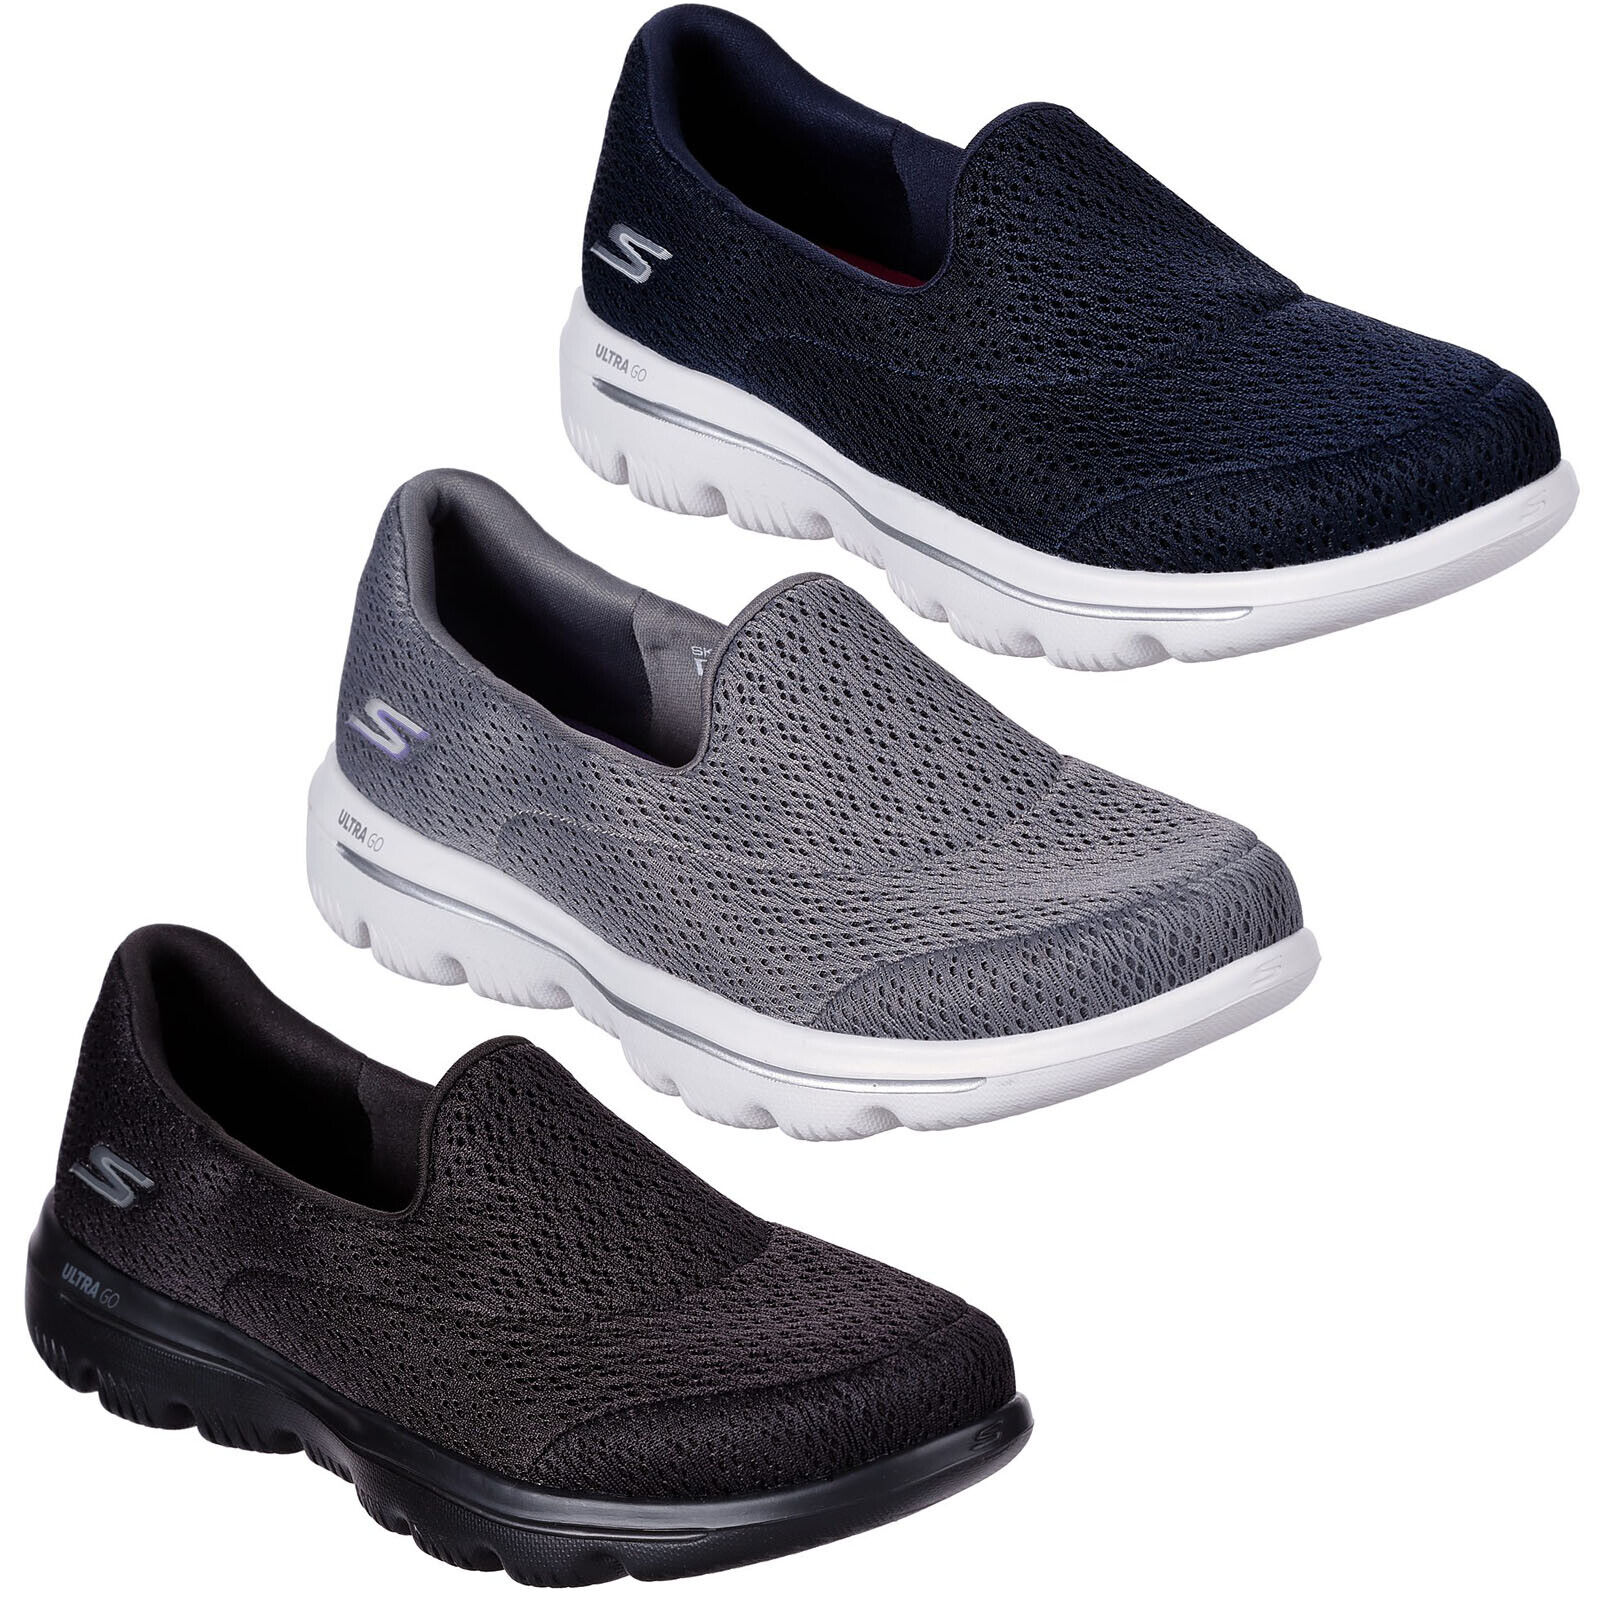 skechers gowalk